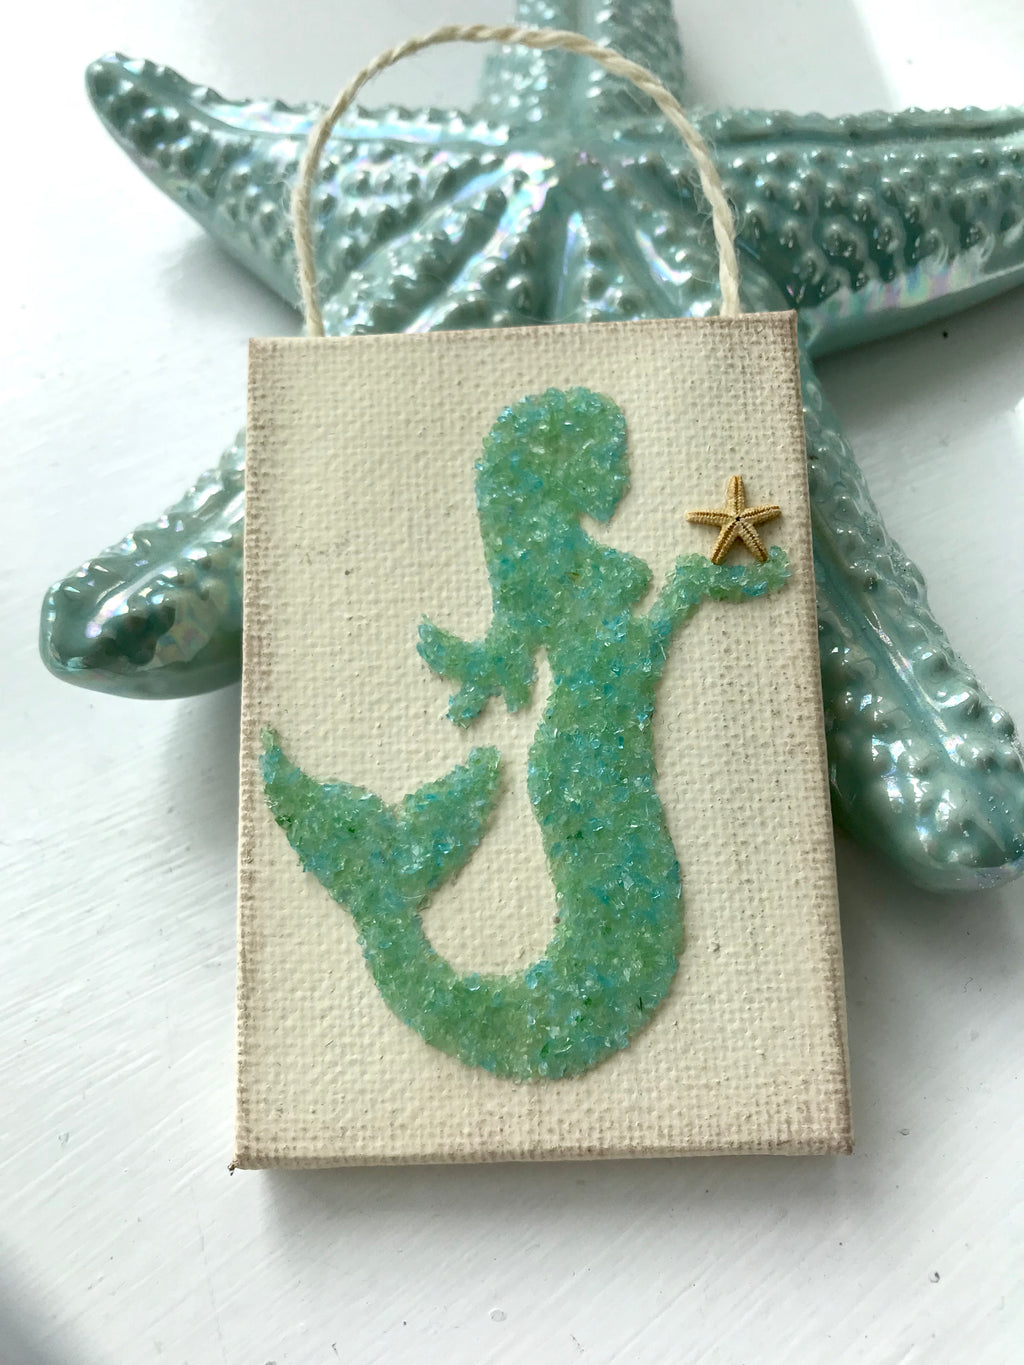 Mermaid ornament Made of Green Crushed Glass